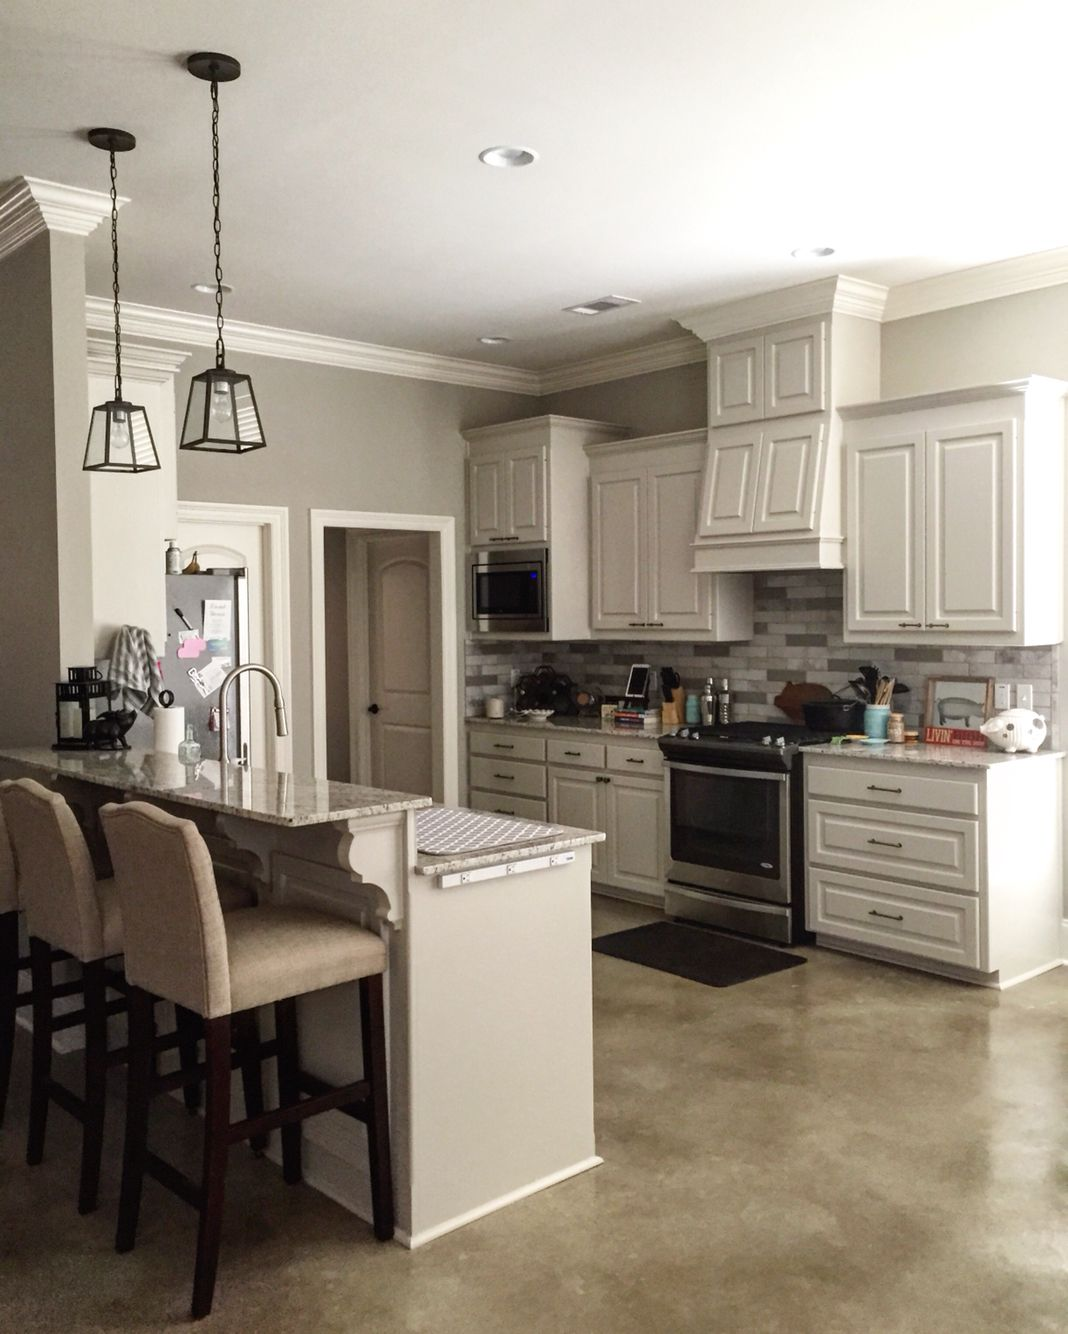 The wall color is benjamin moore revere pewter hc 172 Popular kitchen paint colors benjamin moore